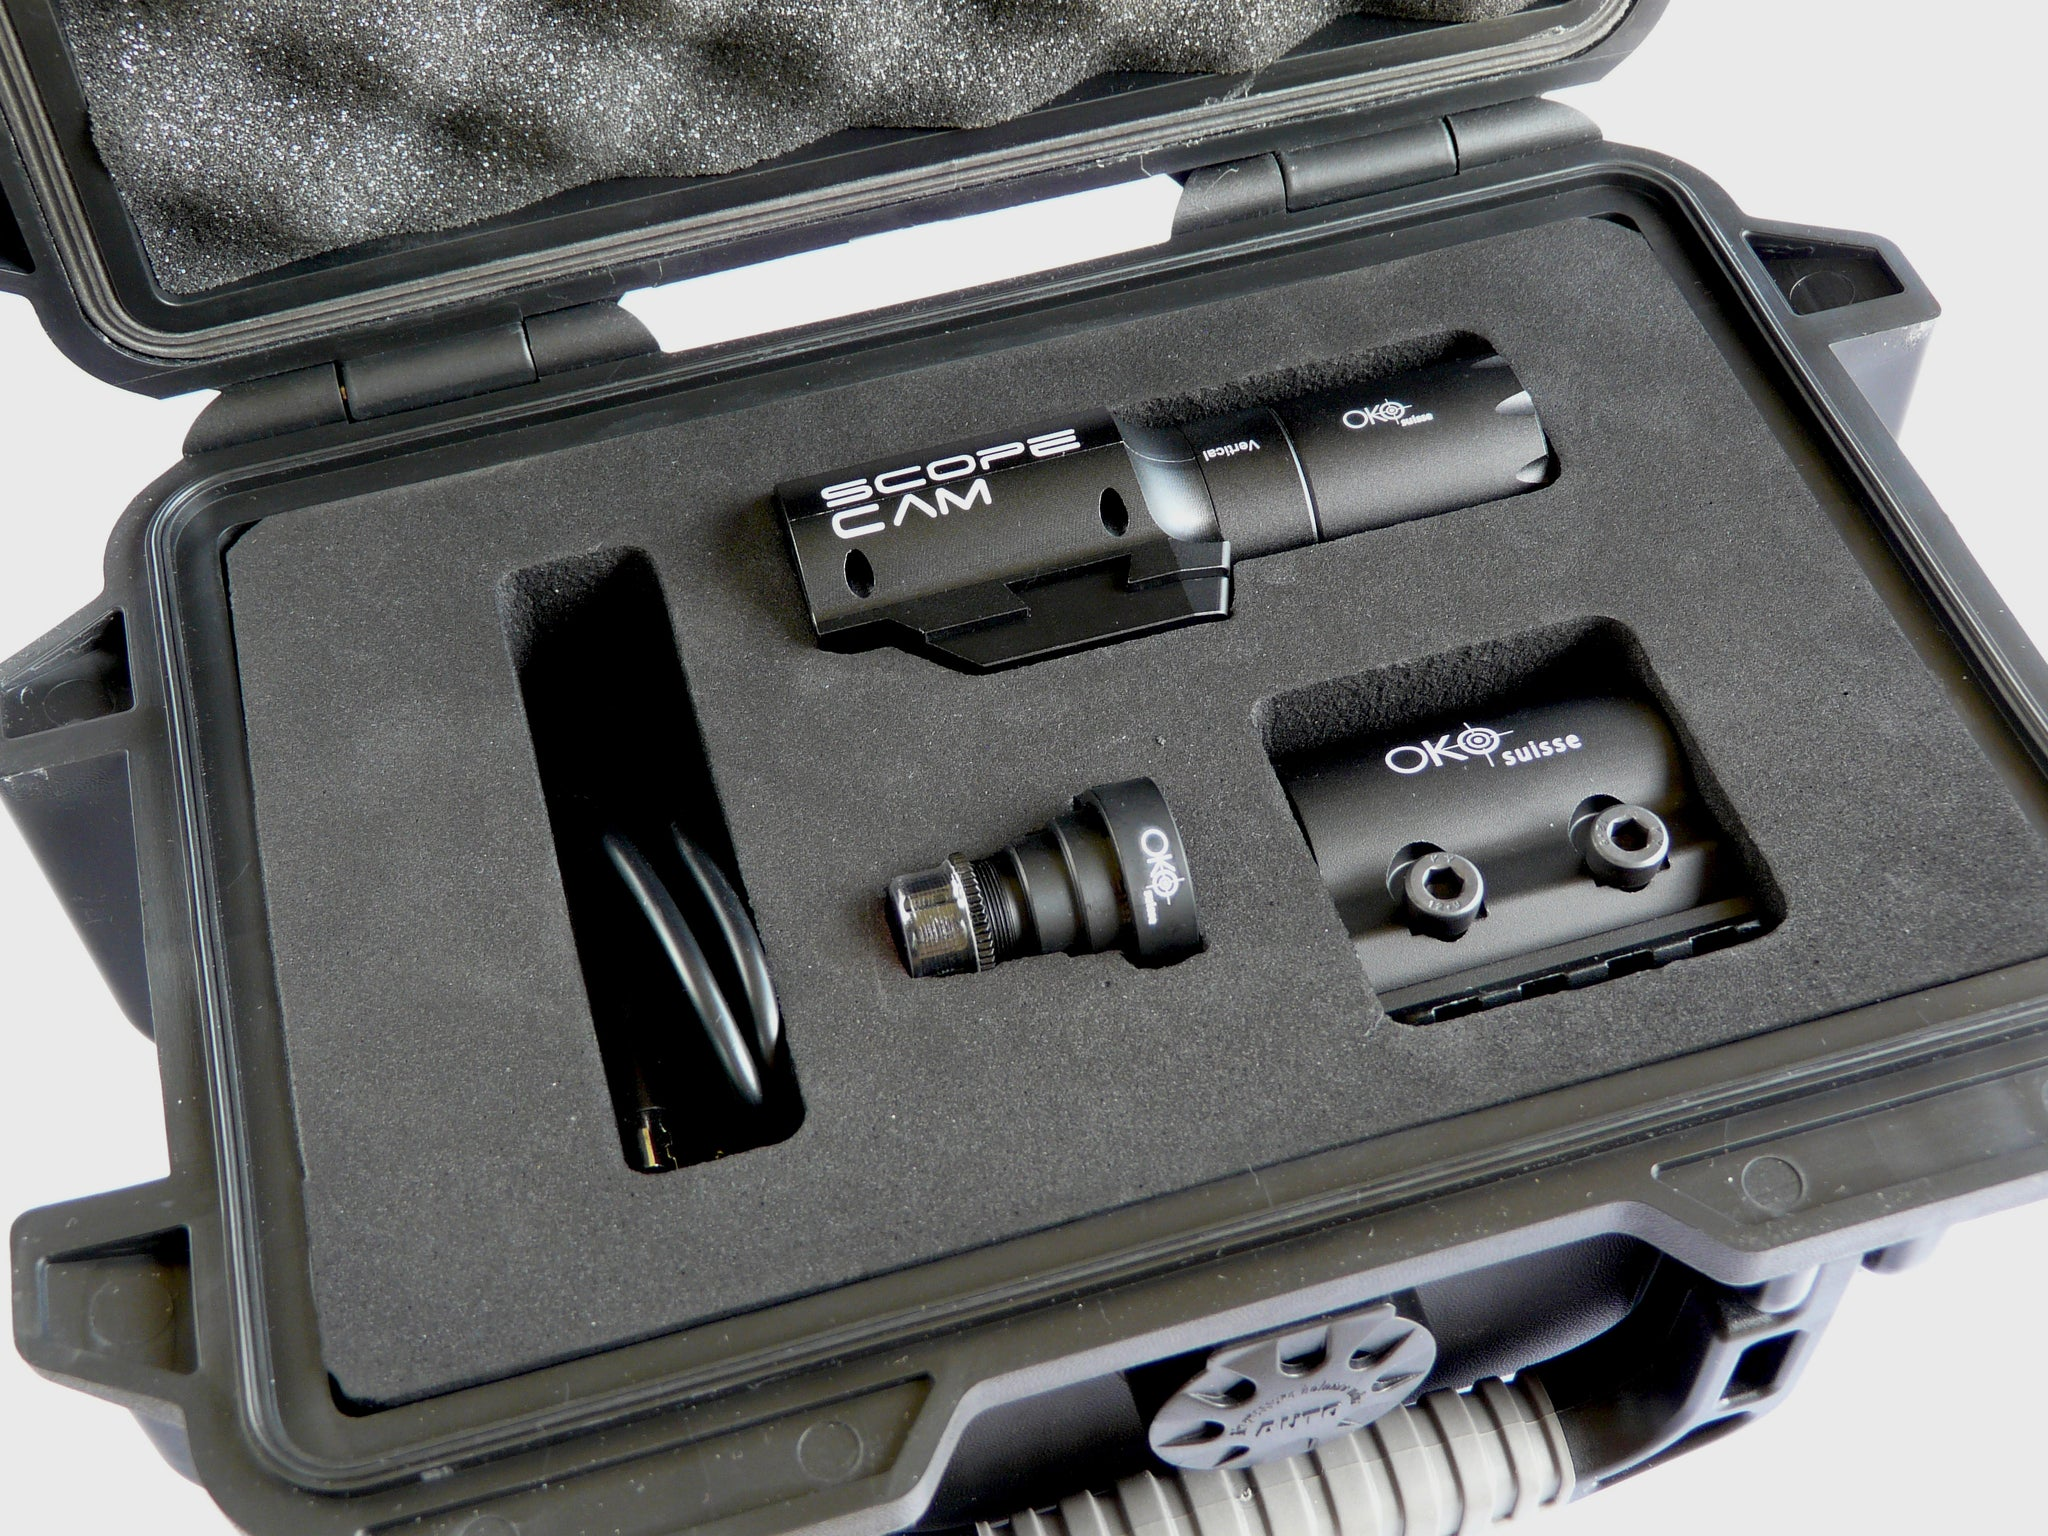 OKO Suisse II Camera Set Black (ScopeCam included)